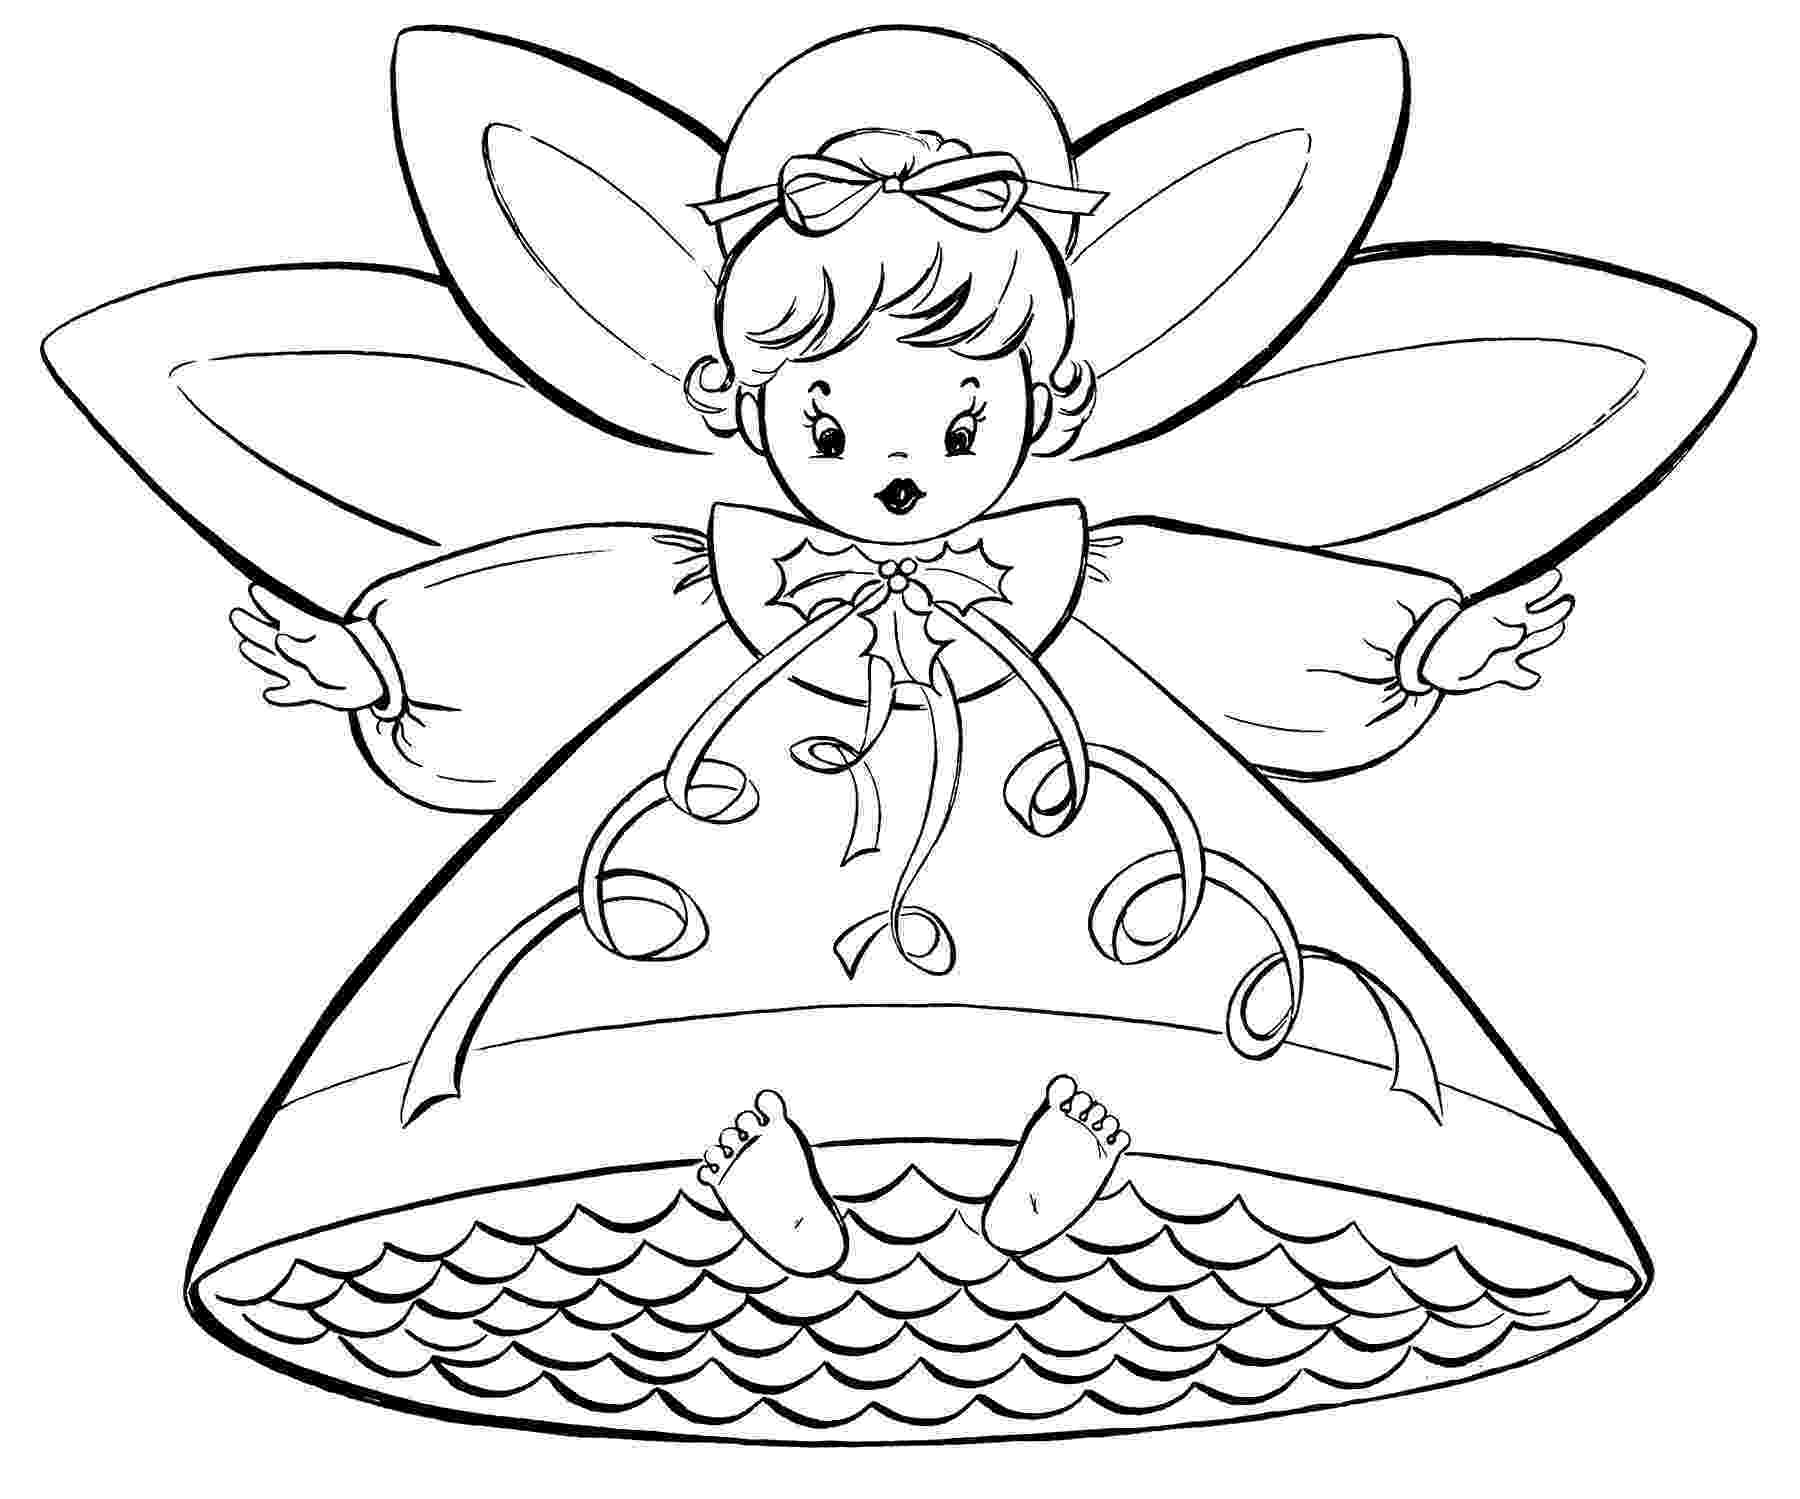 holiday coloring page billie holiday coloring page free printable coloring pages page coloring holiday